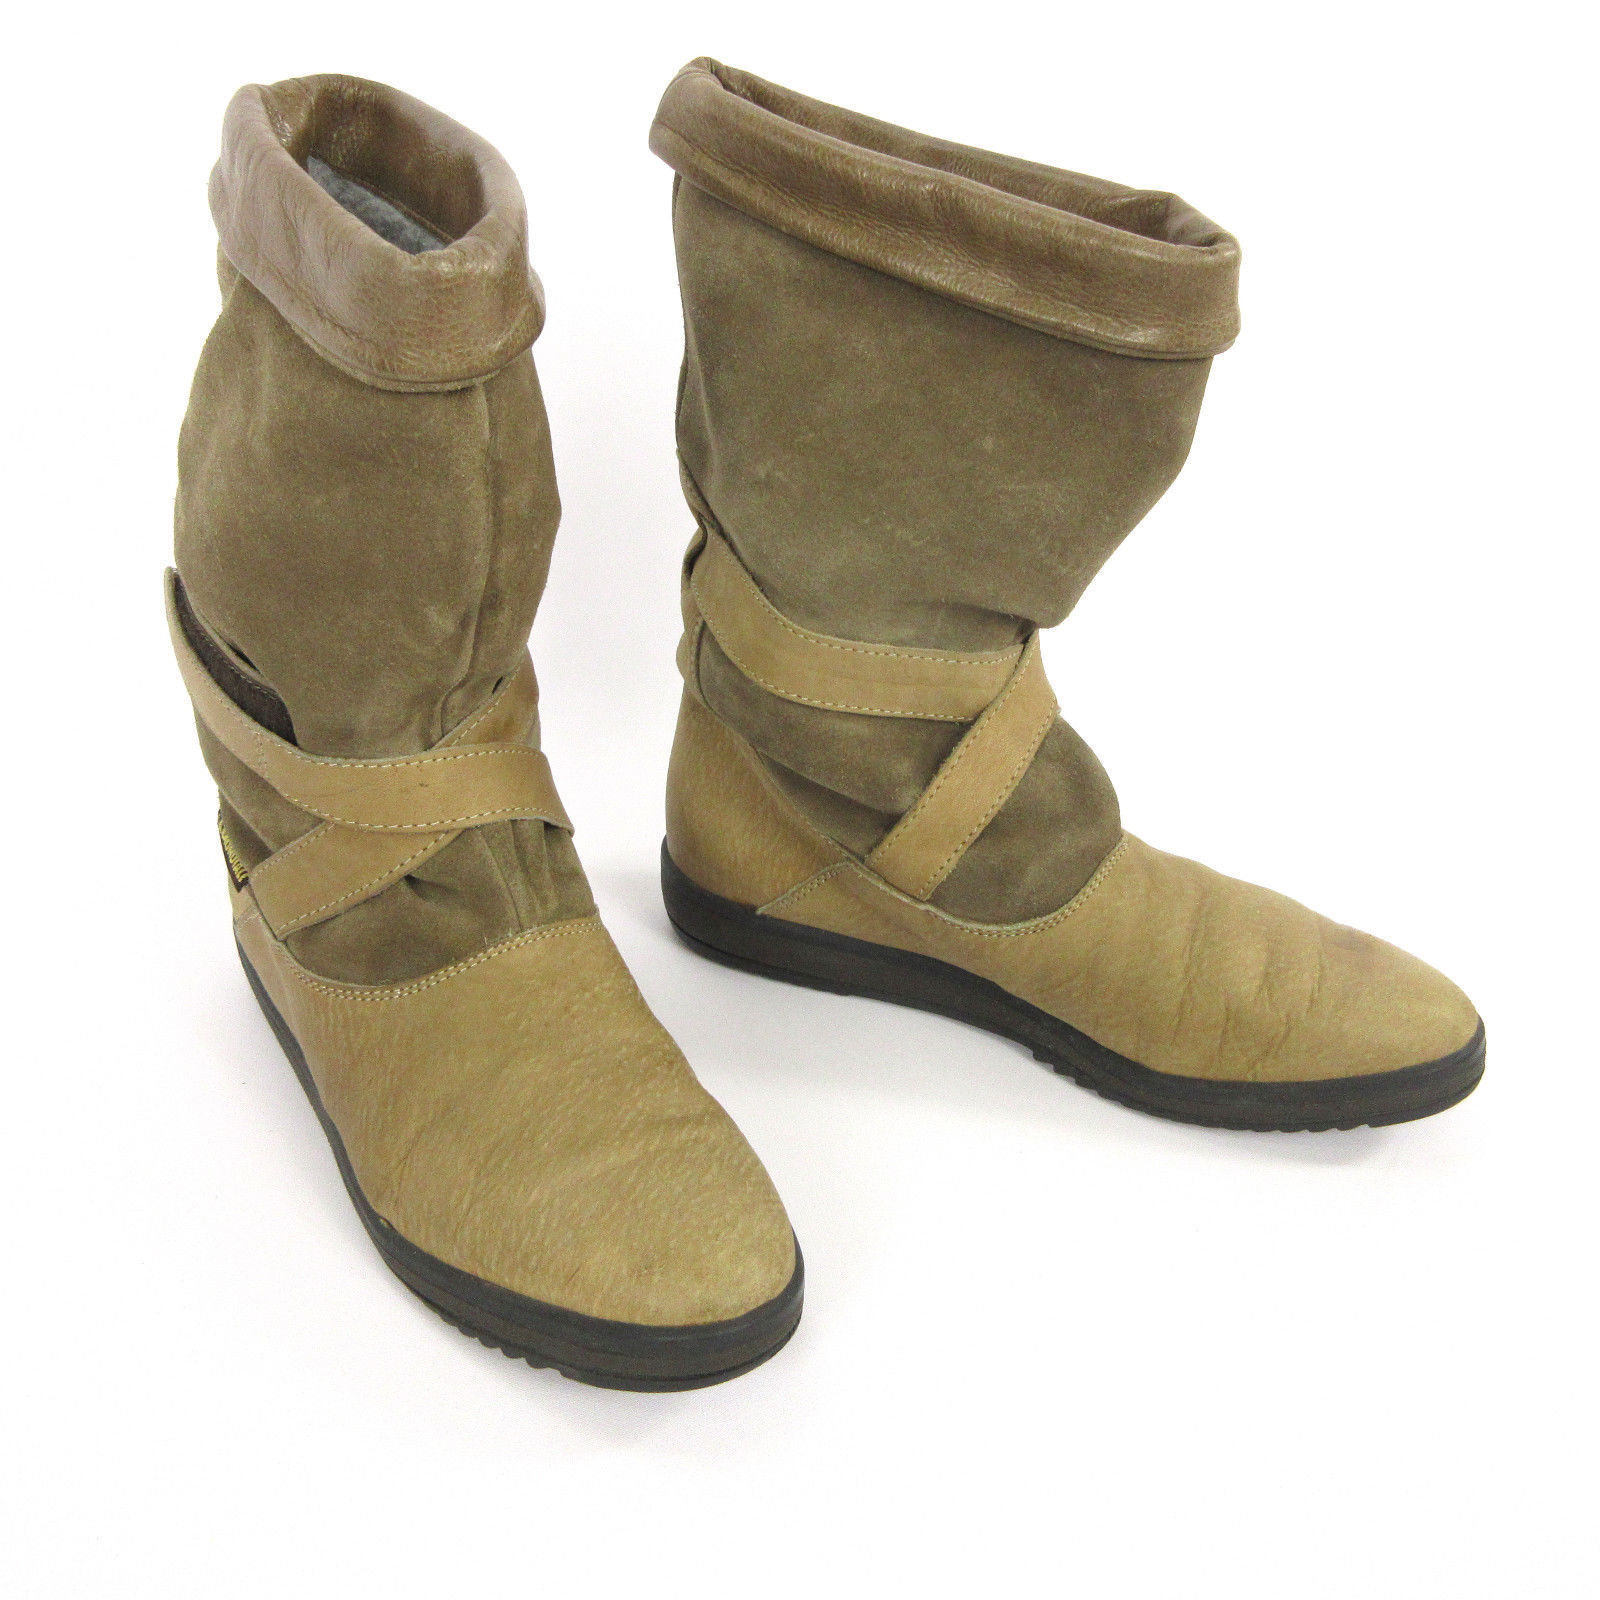 La Mondiale Boots 41 10 - 10.5 Beige Leather Suede Slouch Mid Calf Wedge